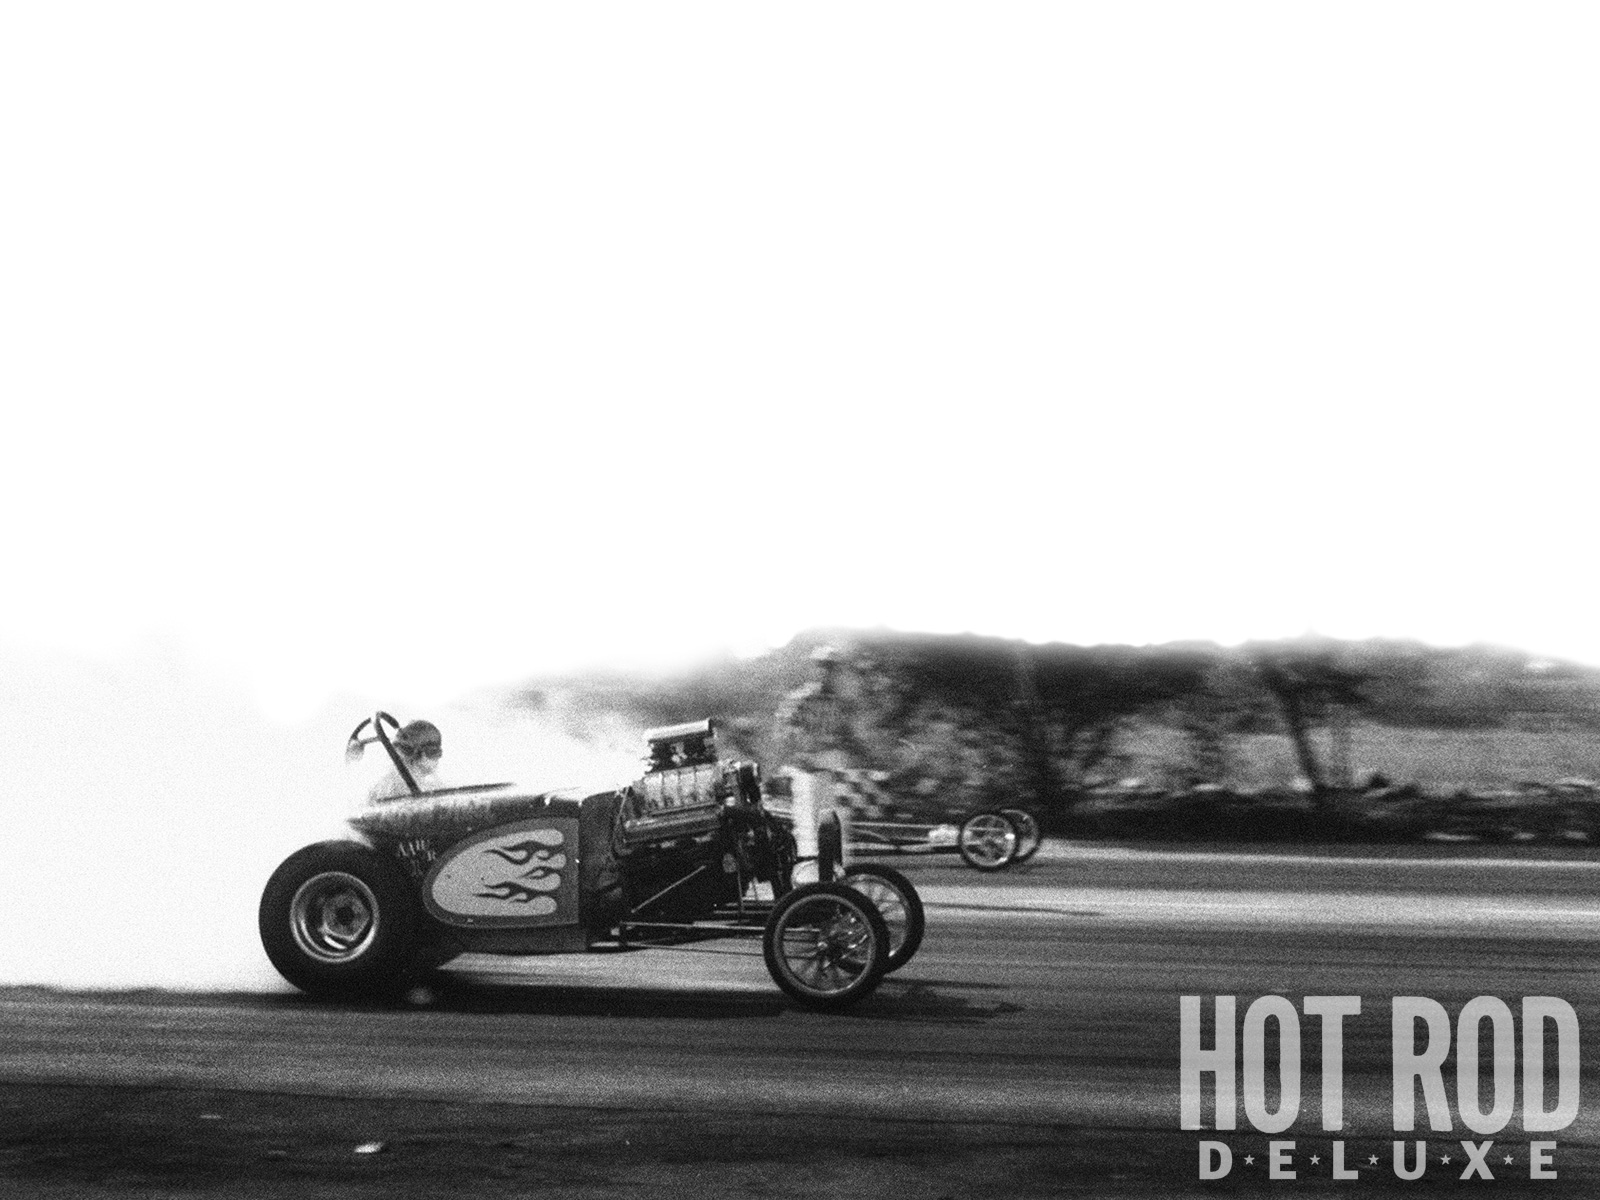 Pure Hell occasionally stopped at San Fernando Raceway en route home from a Saturday-night meet somewhere in Southern California. Rather than collect an easy AA/FA class trophy, Rich Guasco and Dale Emery would qualify and race against Top Gas Dragsters such as George Bolthoff's (which won this round with an 8.31 at 189.86, says the back of the print). The starter seems to be wondering what little Sky Wallace, age 11 or 12, is doing out there with our dad's fixed-lens 35mm camera. The kid's photo was never published, until now.